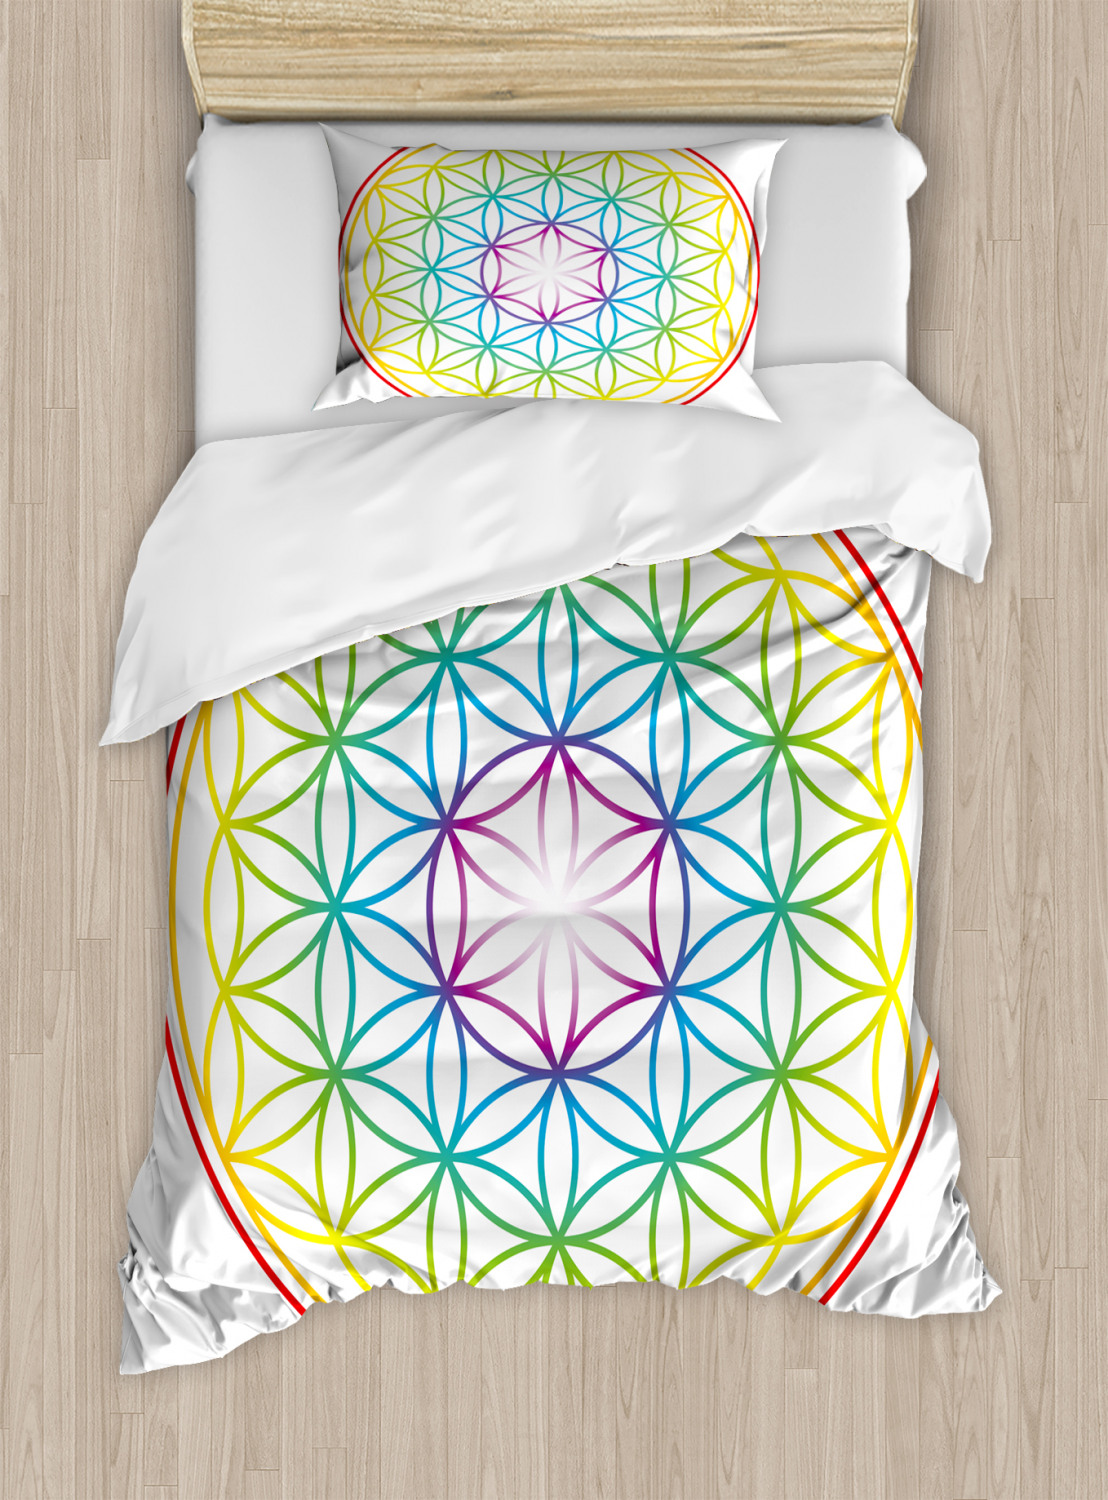 Flower-of-Life-Duvet-Cover-Set-Twin-Queen-King-Sizes-with-Pillow-Shams thumbnail 25